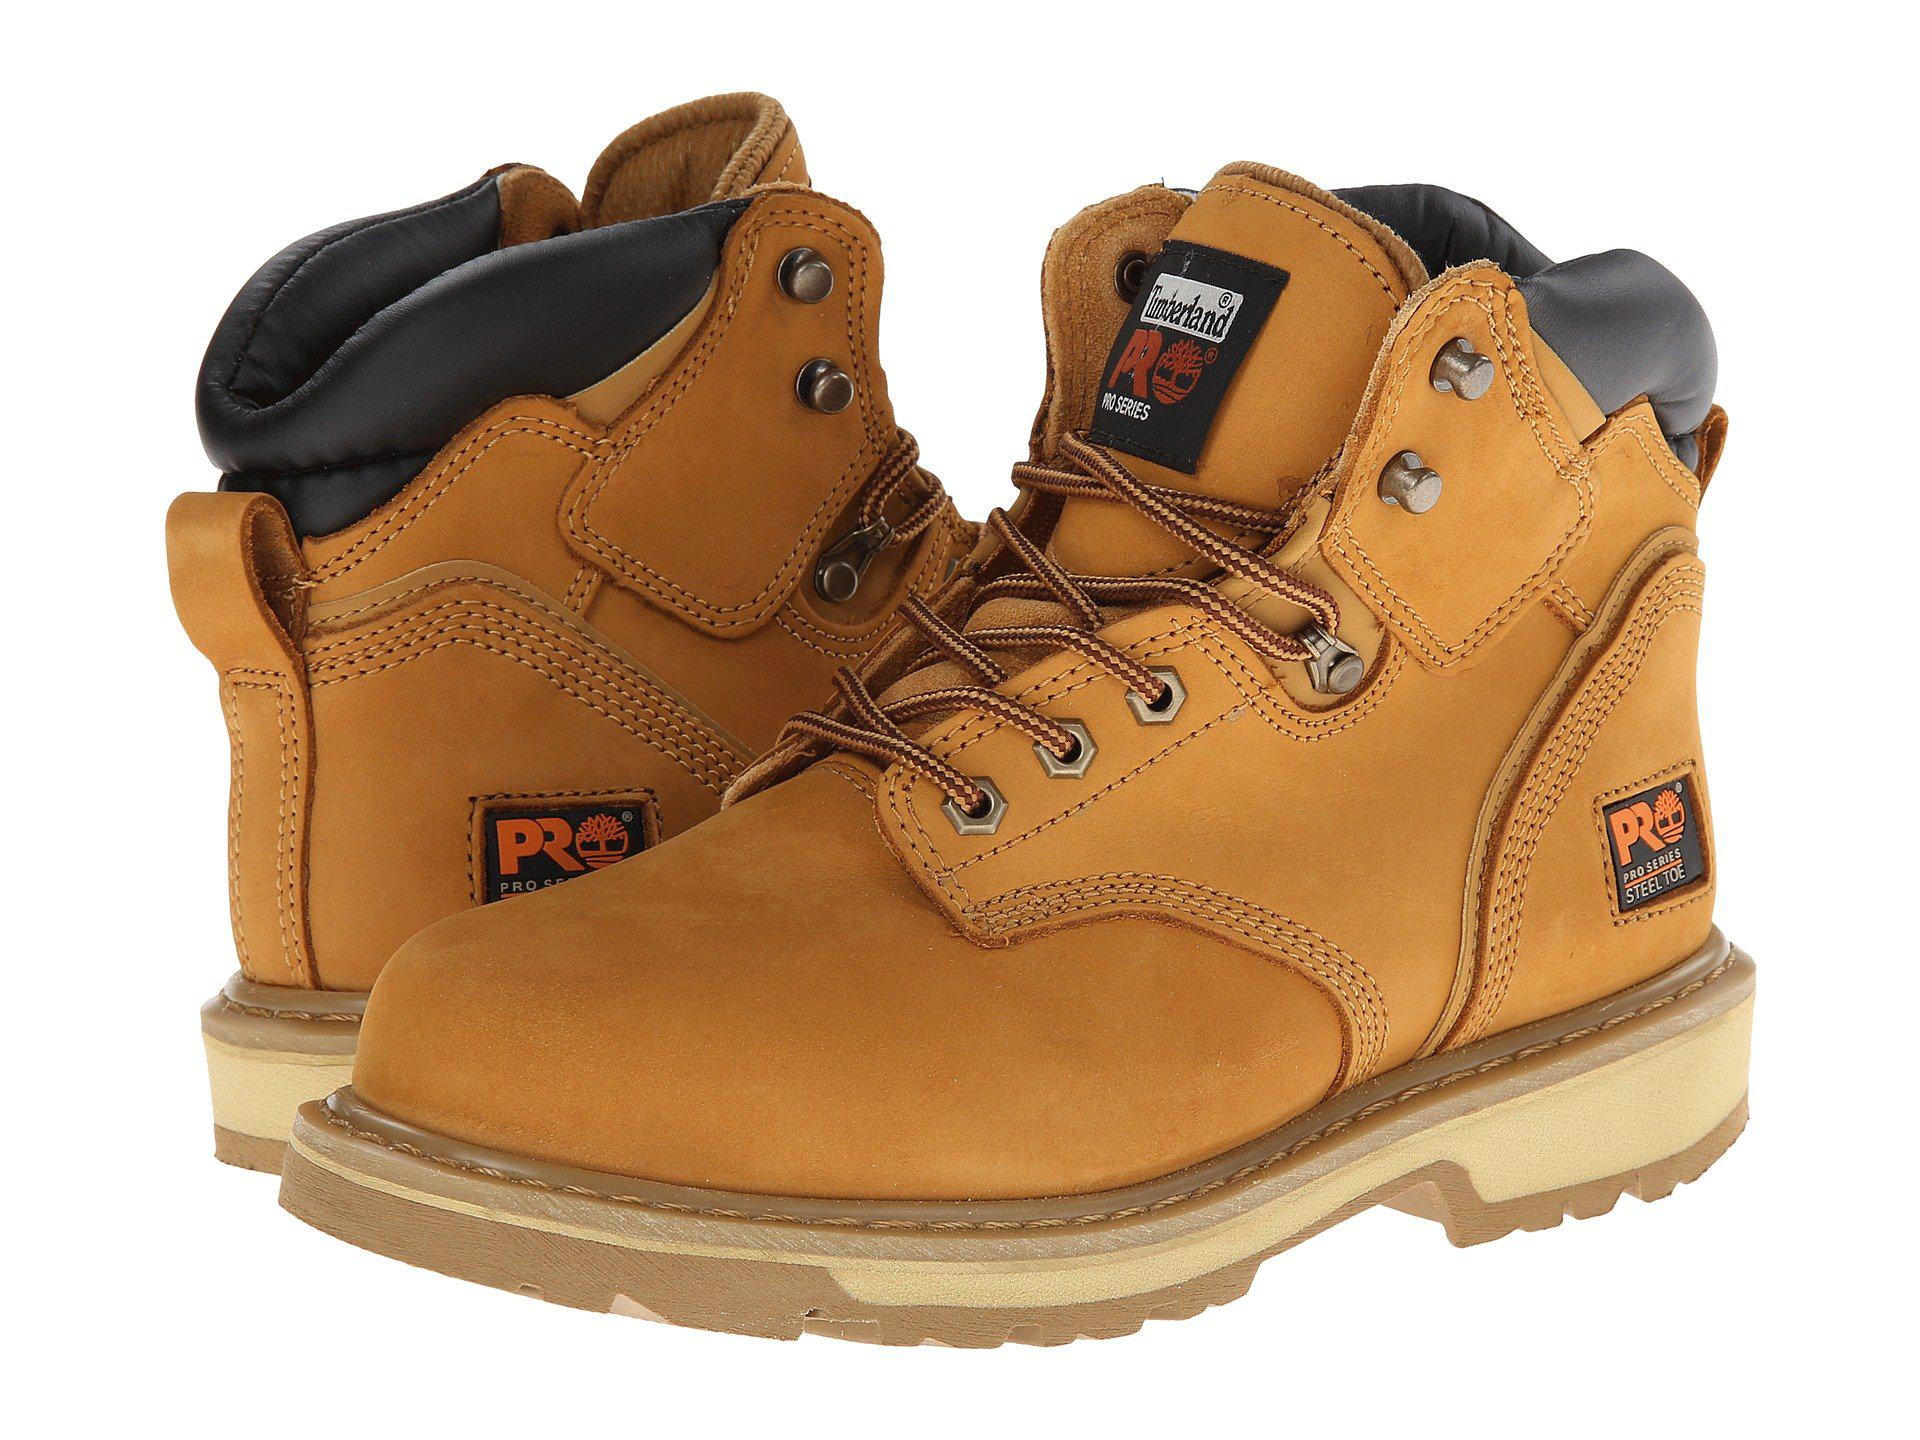 Timberland Pro Pit Boss 6In Steel Toe- Tan boots